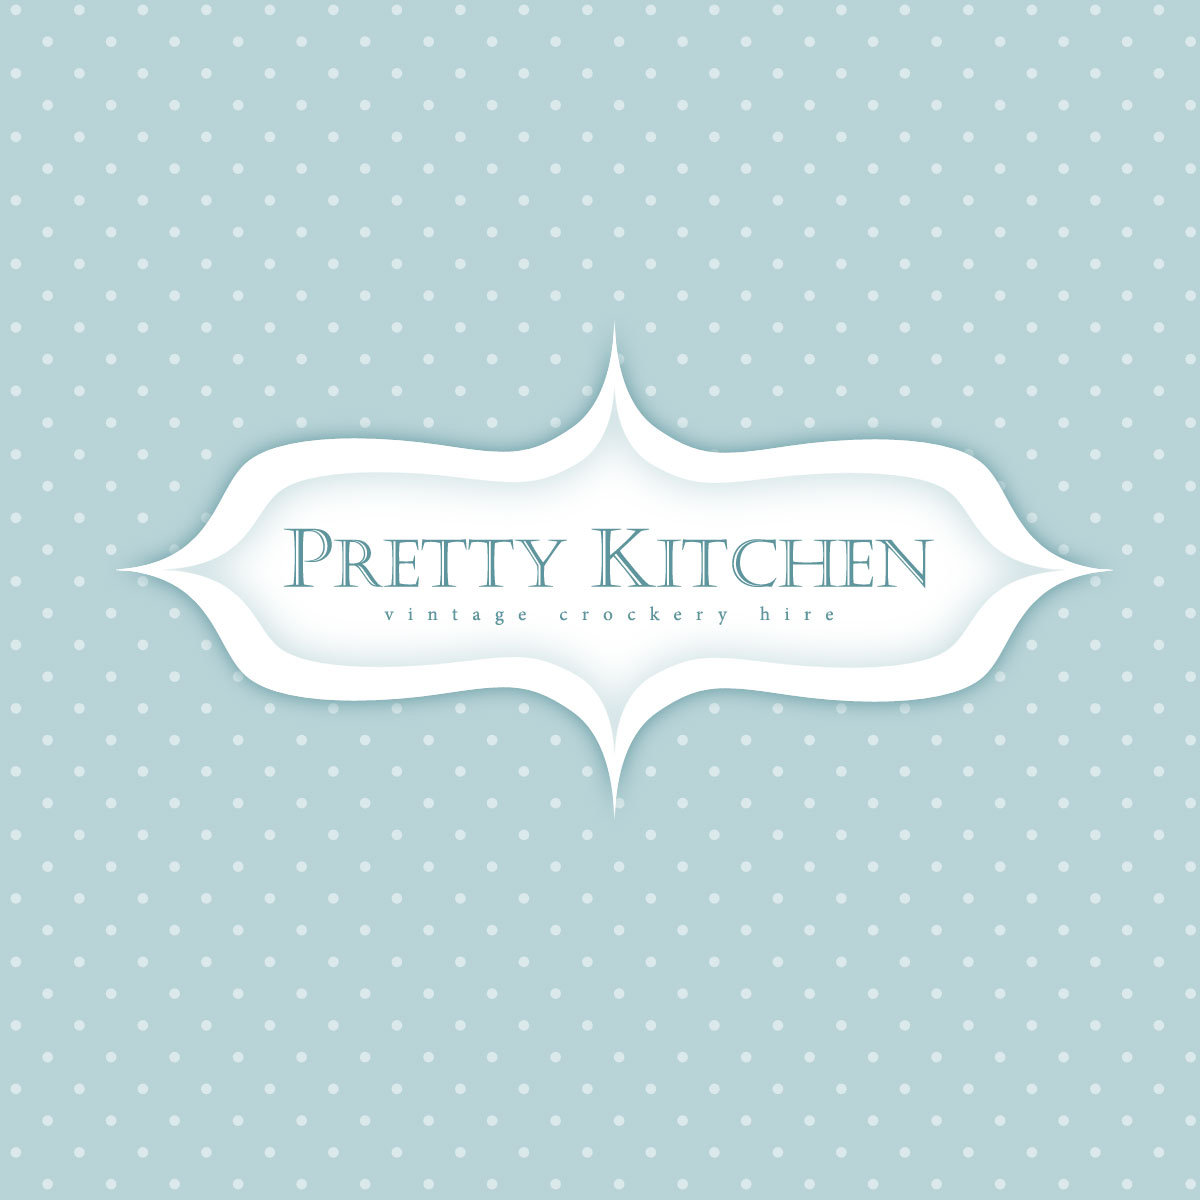 Pretty Kitchen Vintage Crockery Hire Business Logo - logo design by PixelDuck